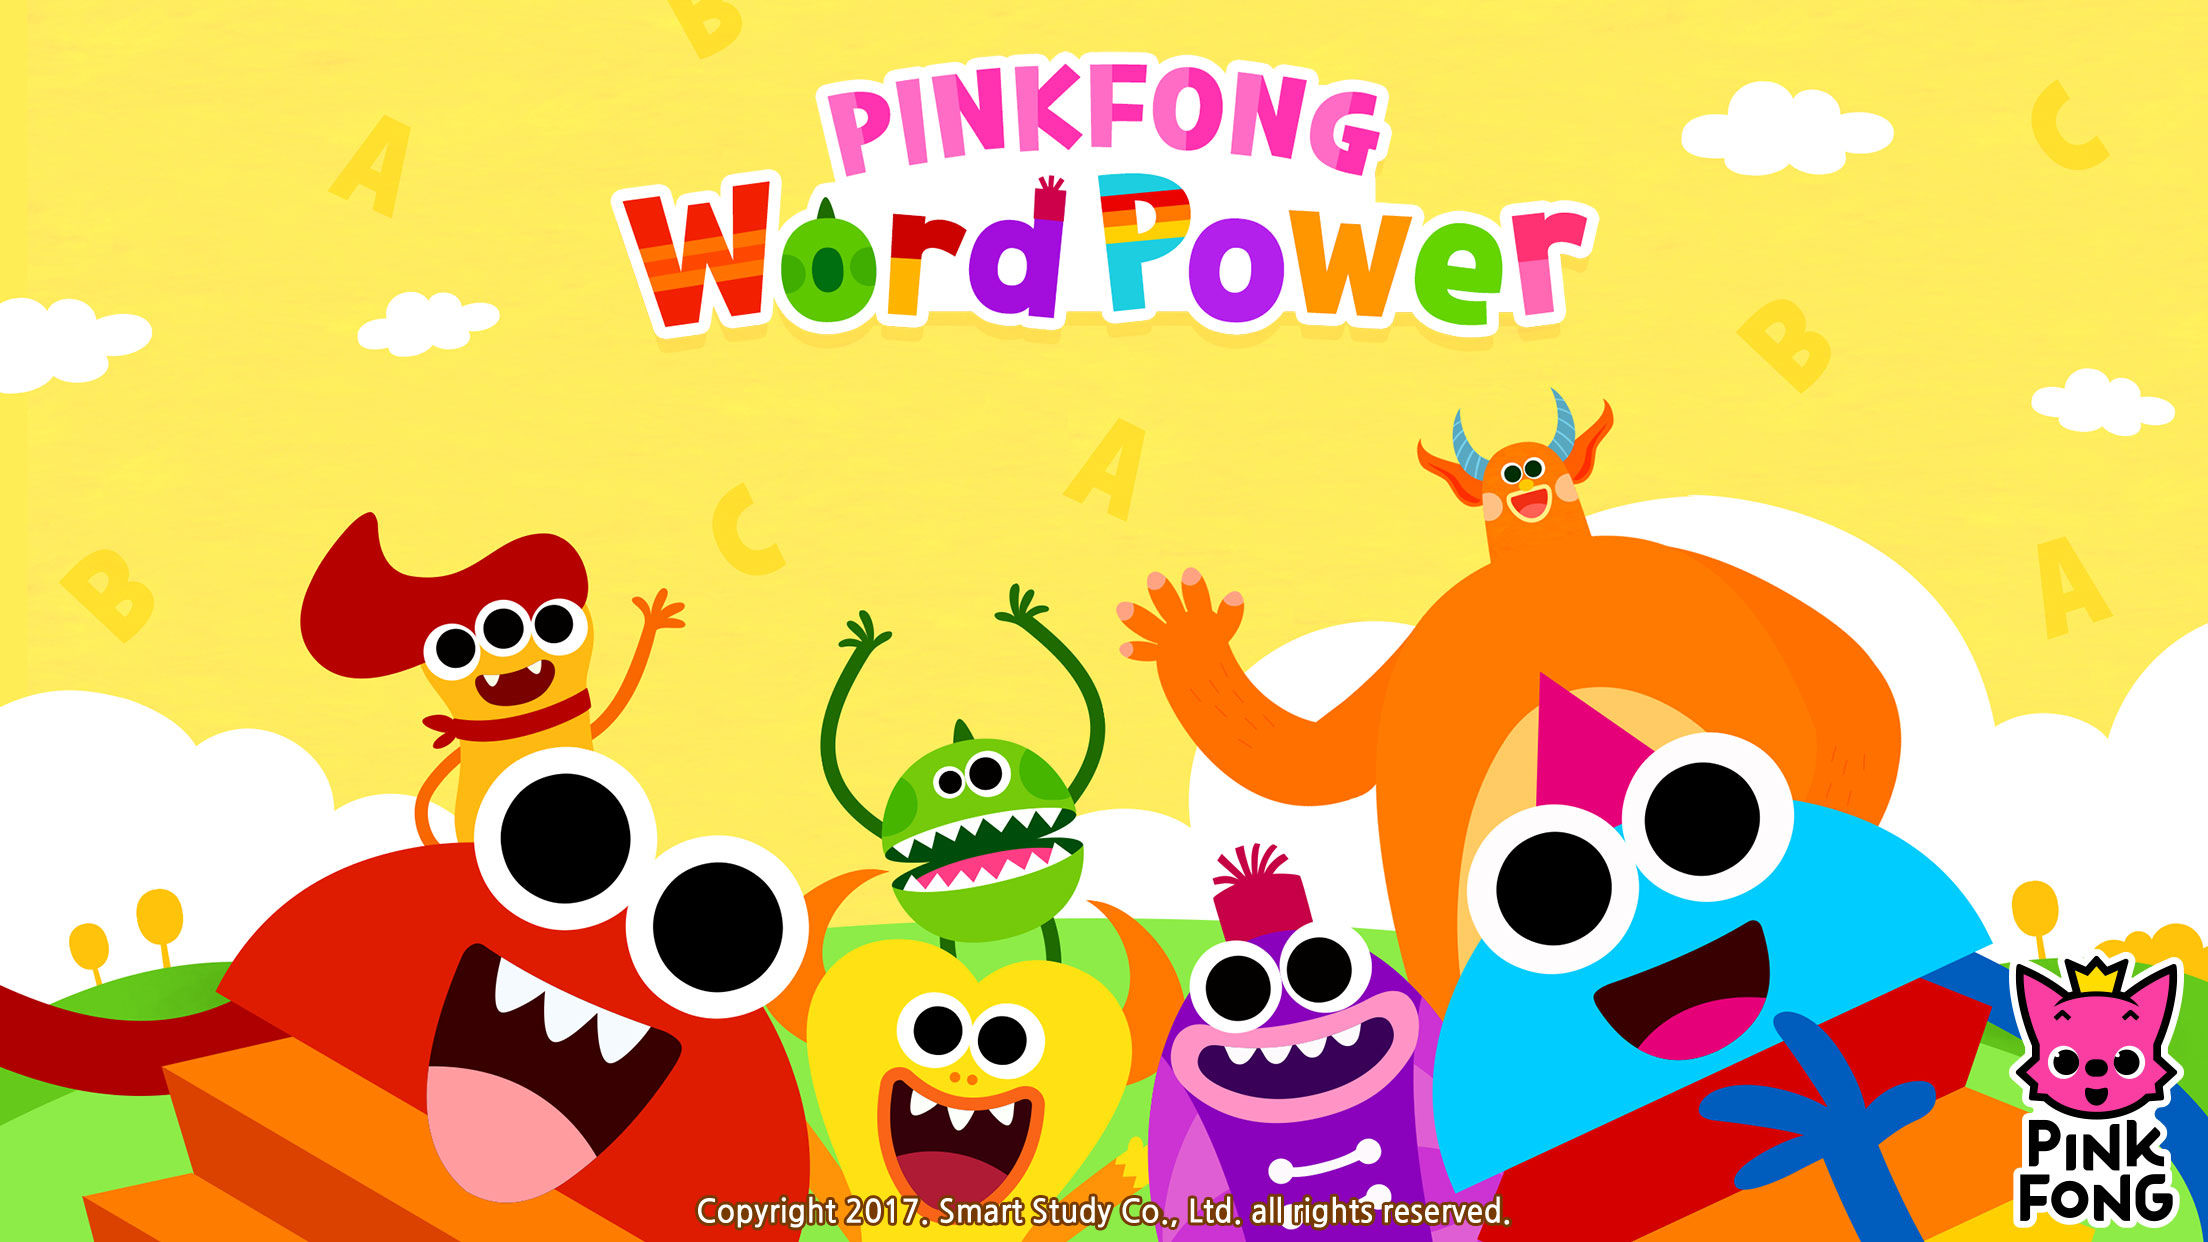 pinkfong wordpower